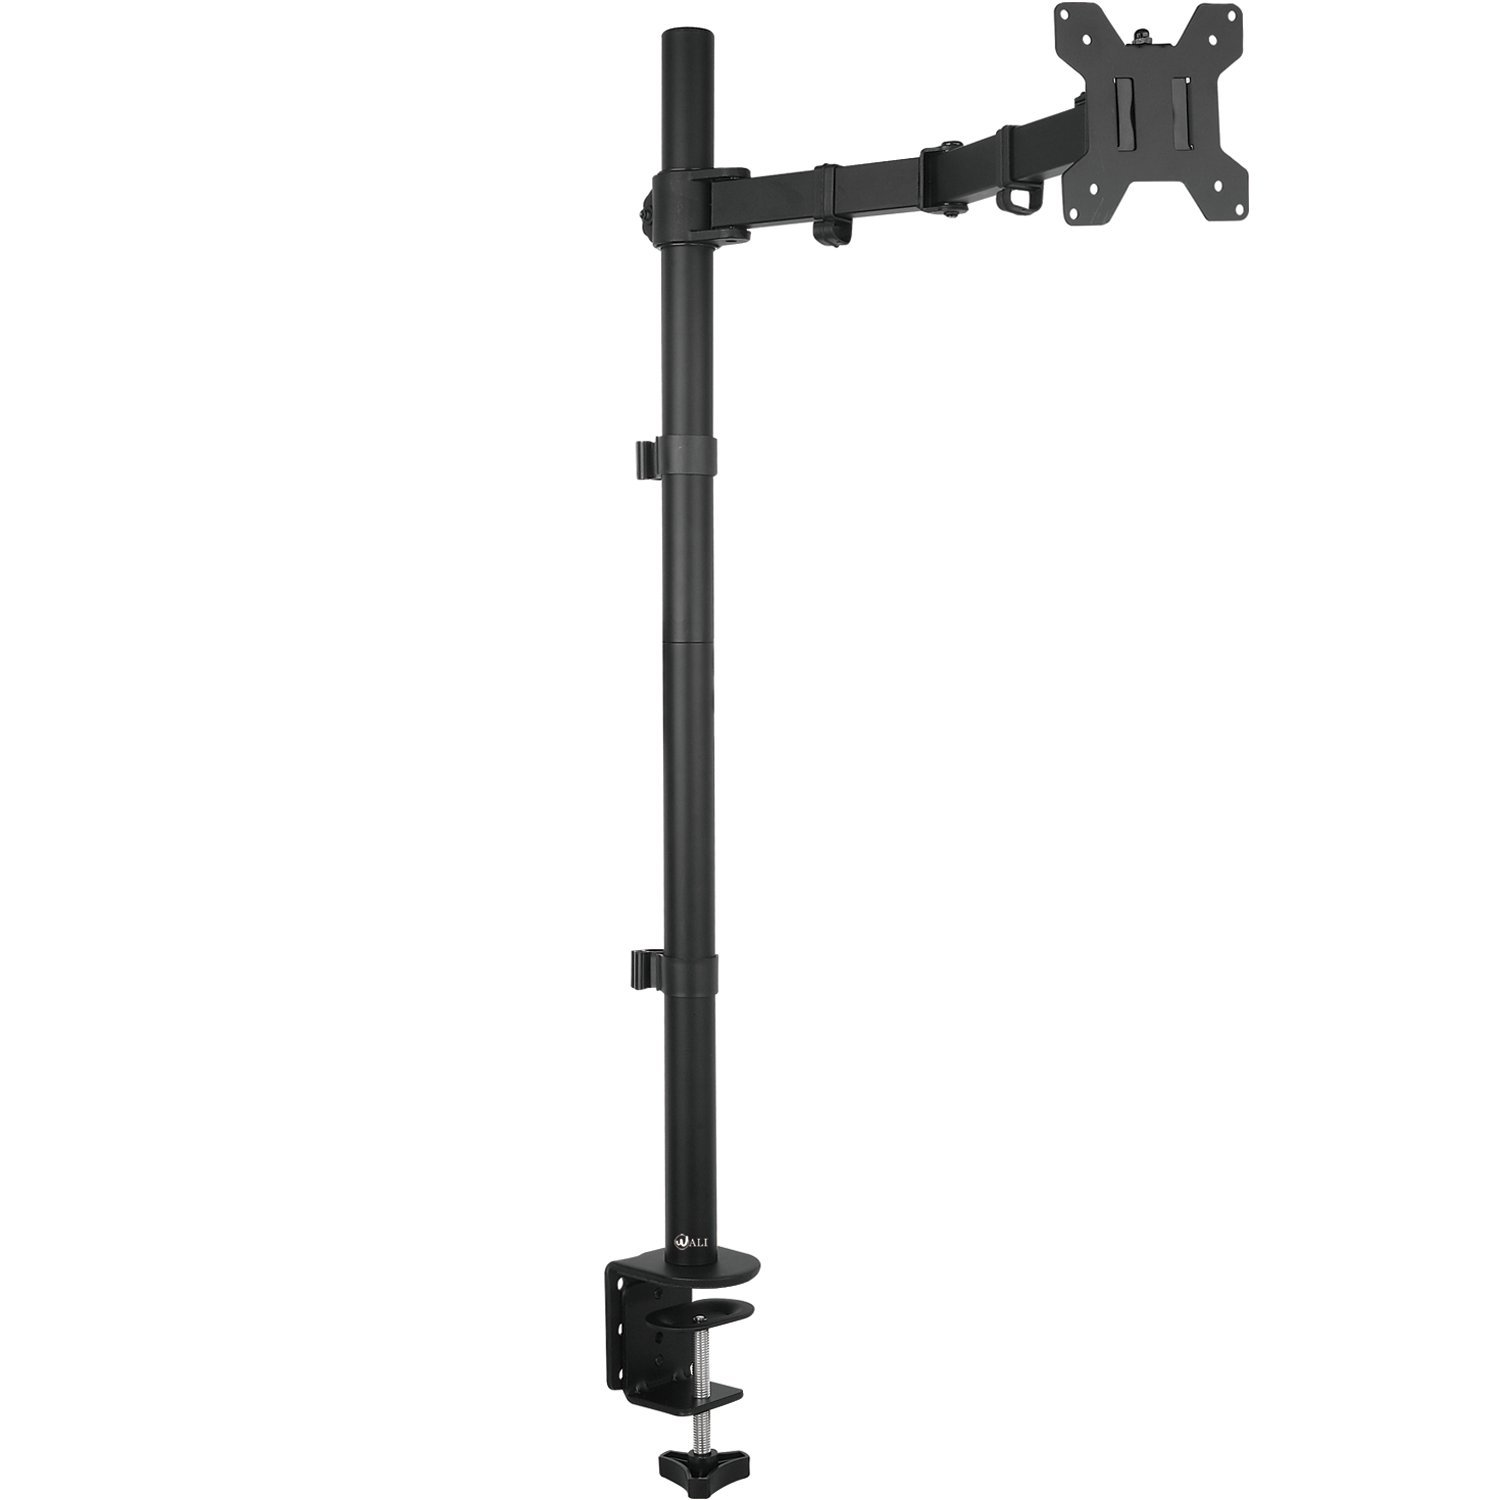 "WALI Extra Tall Single LCD Monitor Fully Adjustable Desk Mount Fits One Screen up to 27"", 22lbs. Weight Capacity (M001XL), Black"